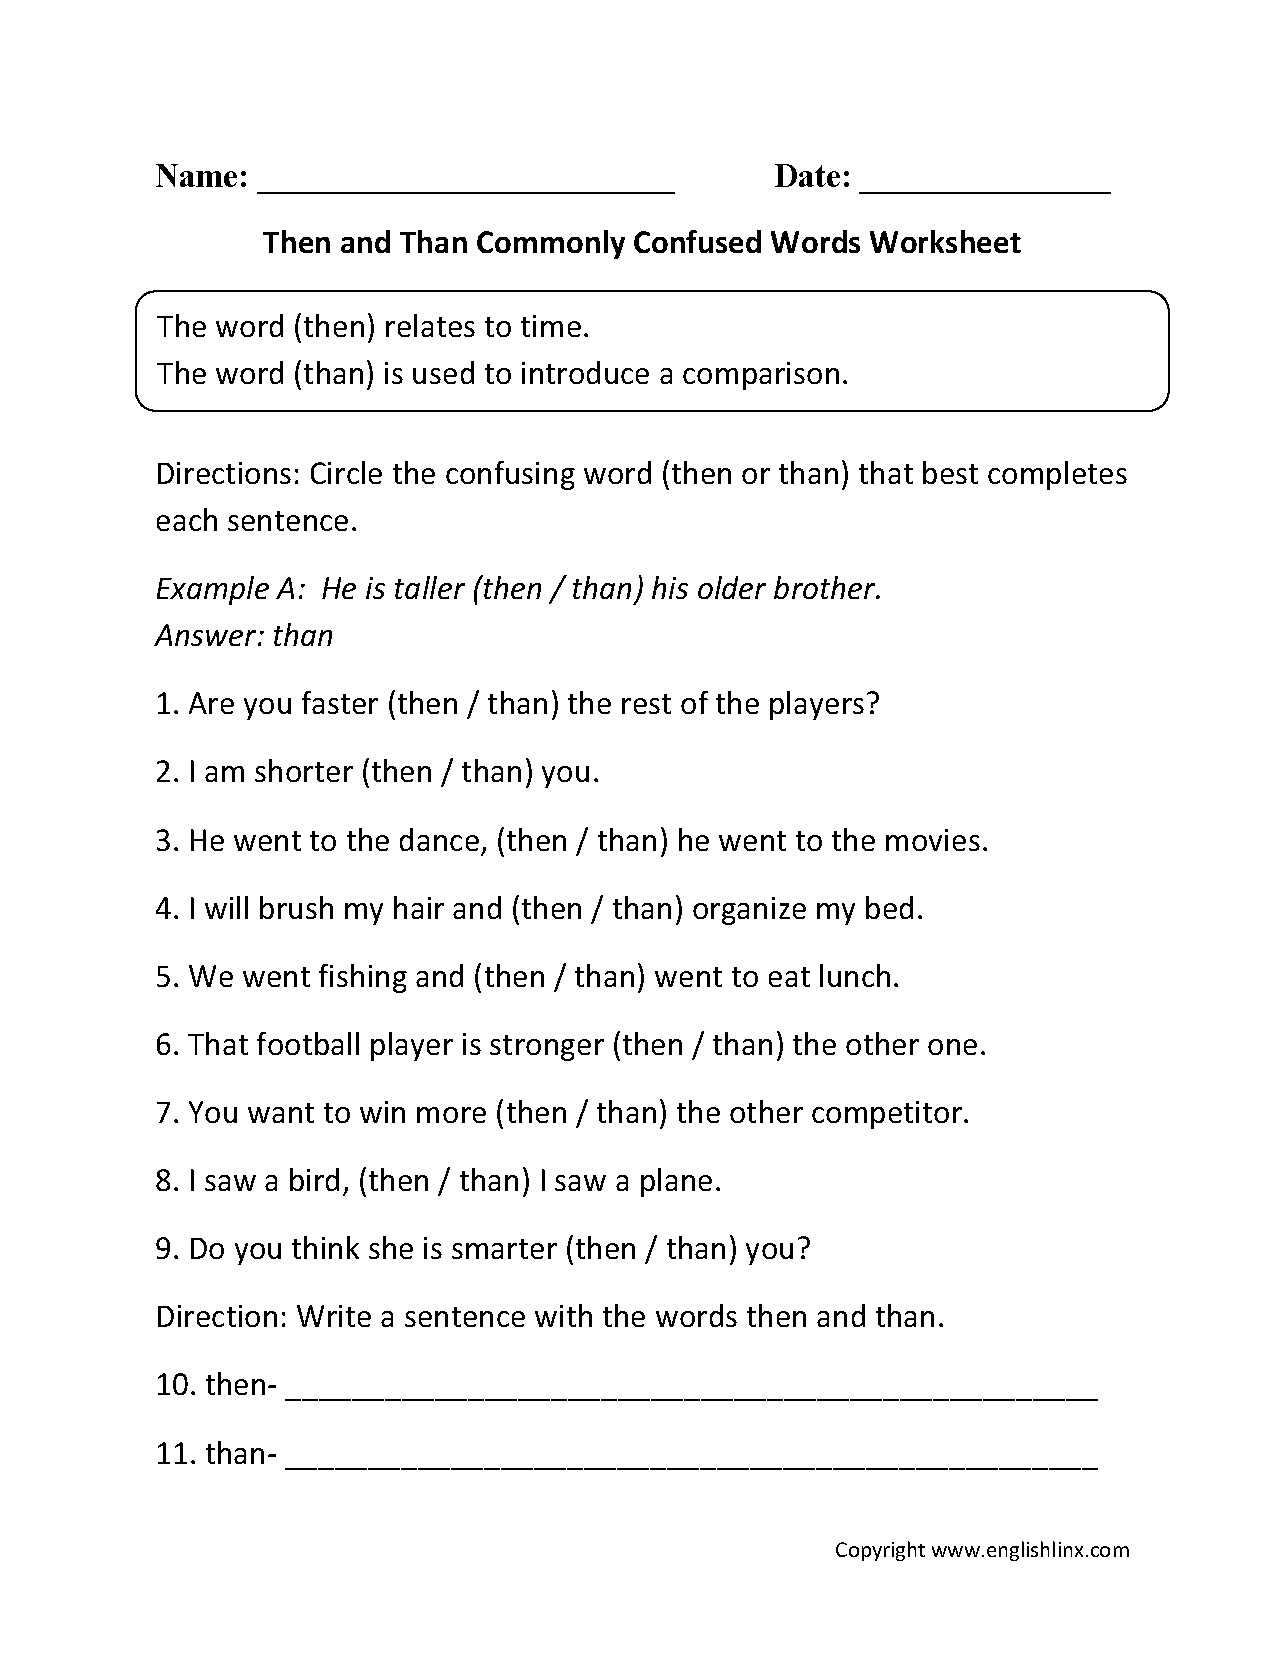 Commonly Confused Words Quiz Worksheet